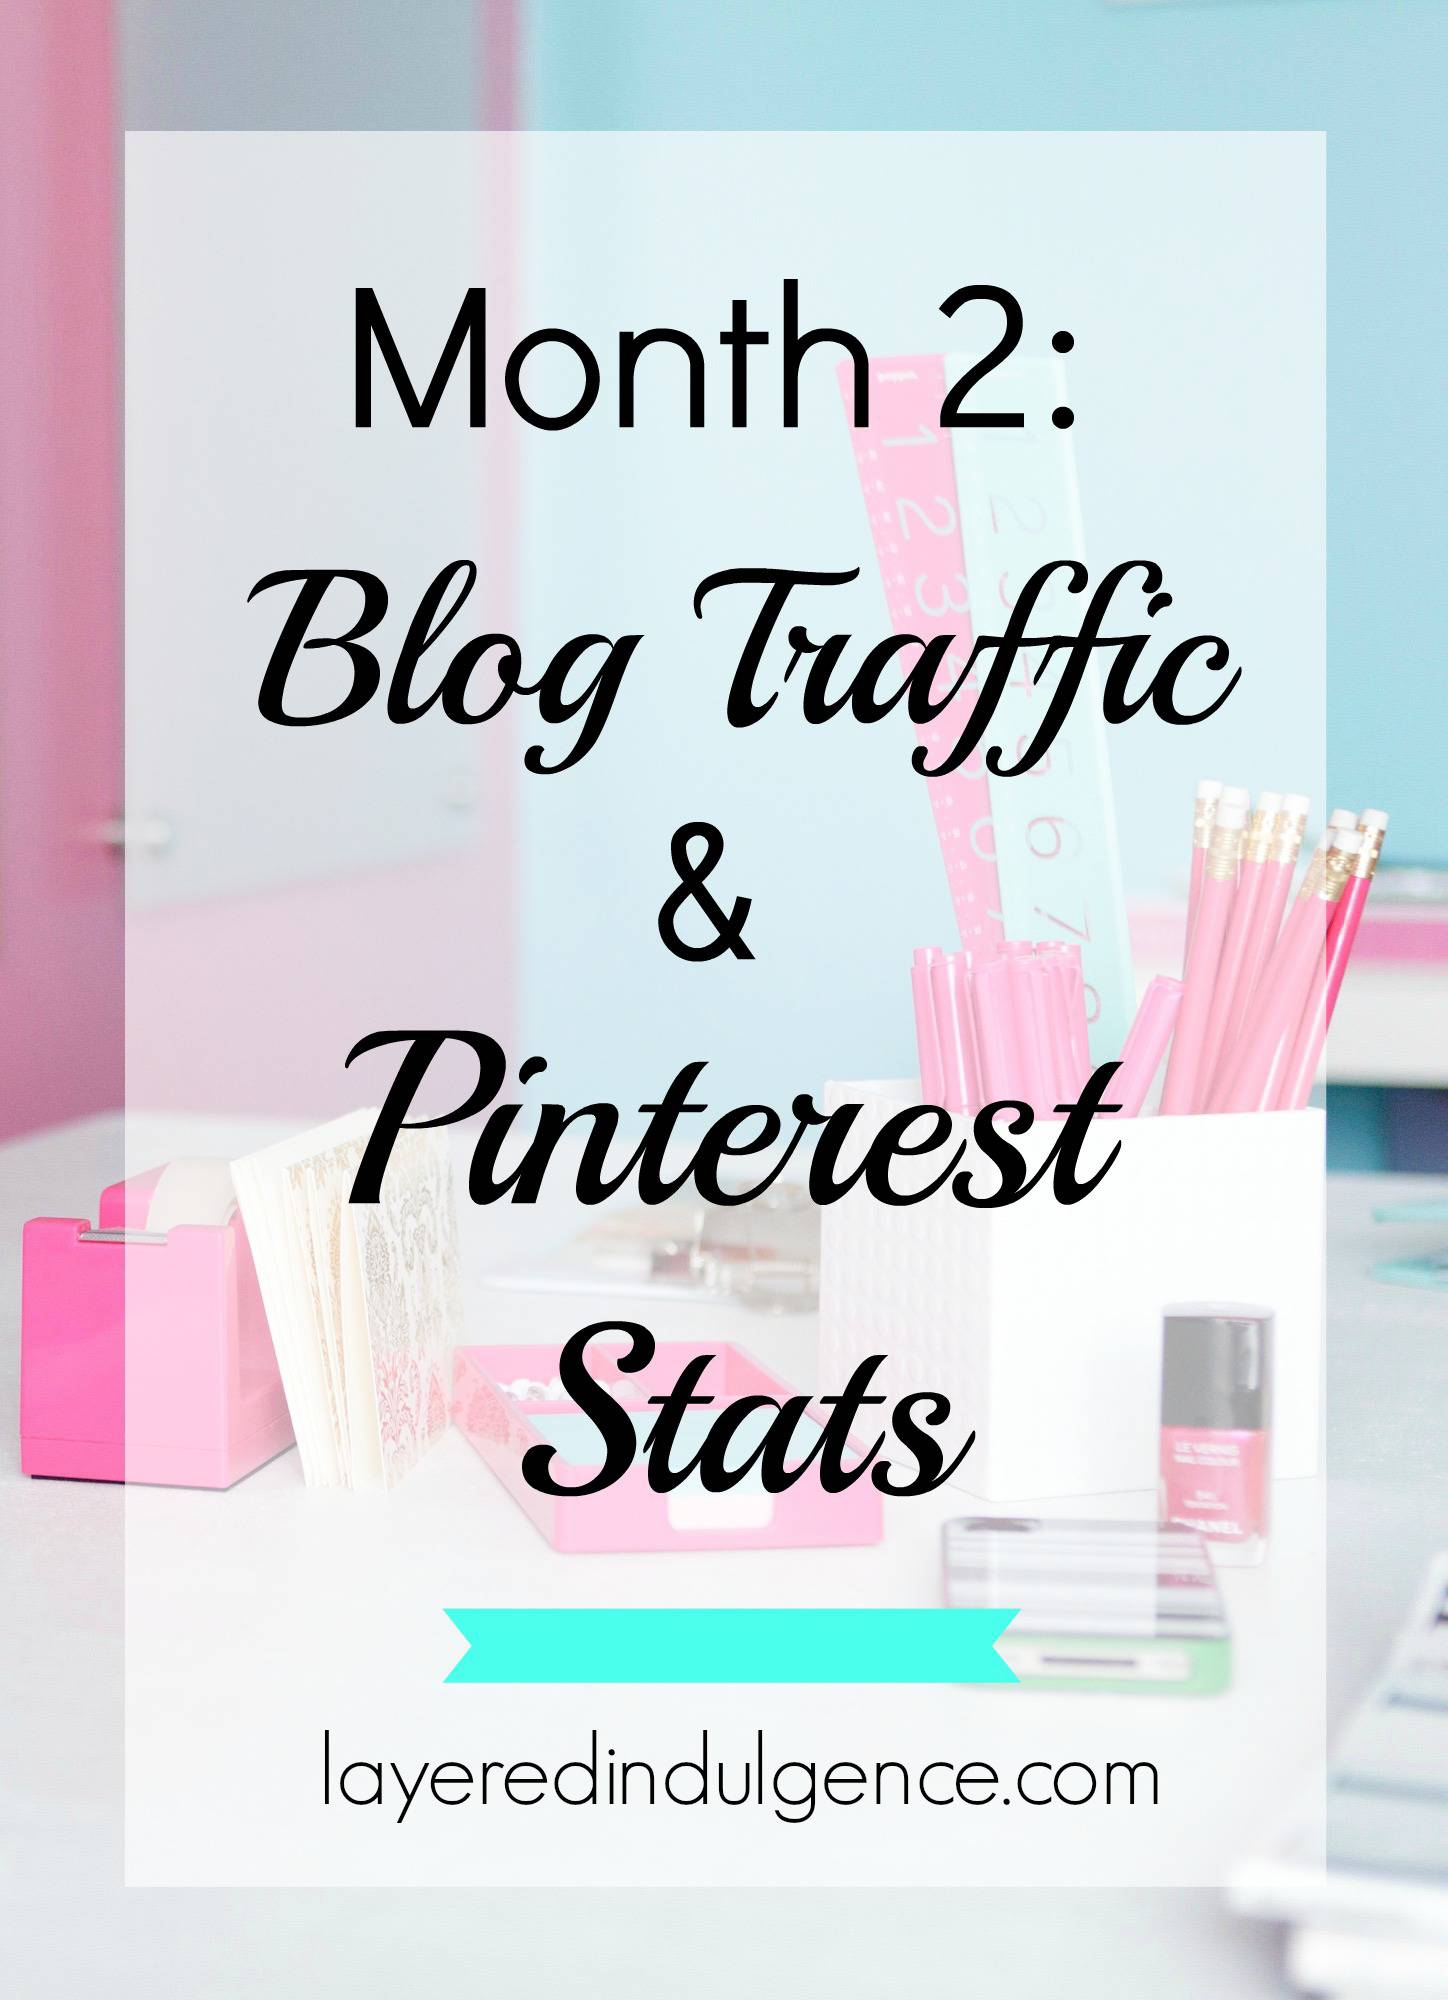 Two months after switching my focus to blogging for bloggers I've seen amazing growth with my blog! From upping my social media to growing my email list, I lay out exactly what I did to boost my page views and hit almost 200,000 monthly Pinterest viewers. Click through to see my stats, the tools I used, what worked, and my best tips to grow your blog!